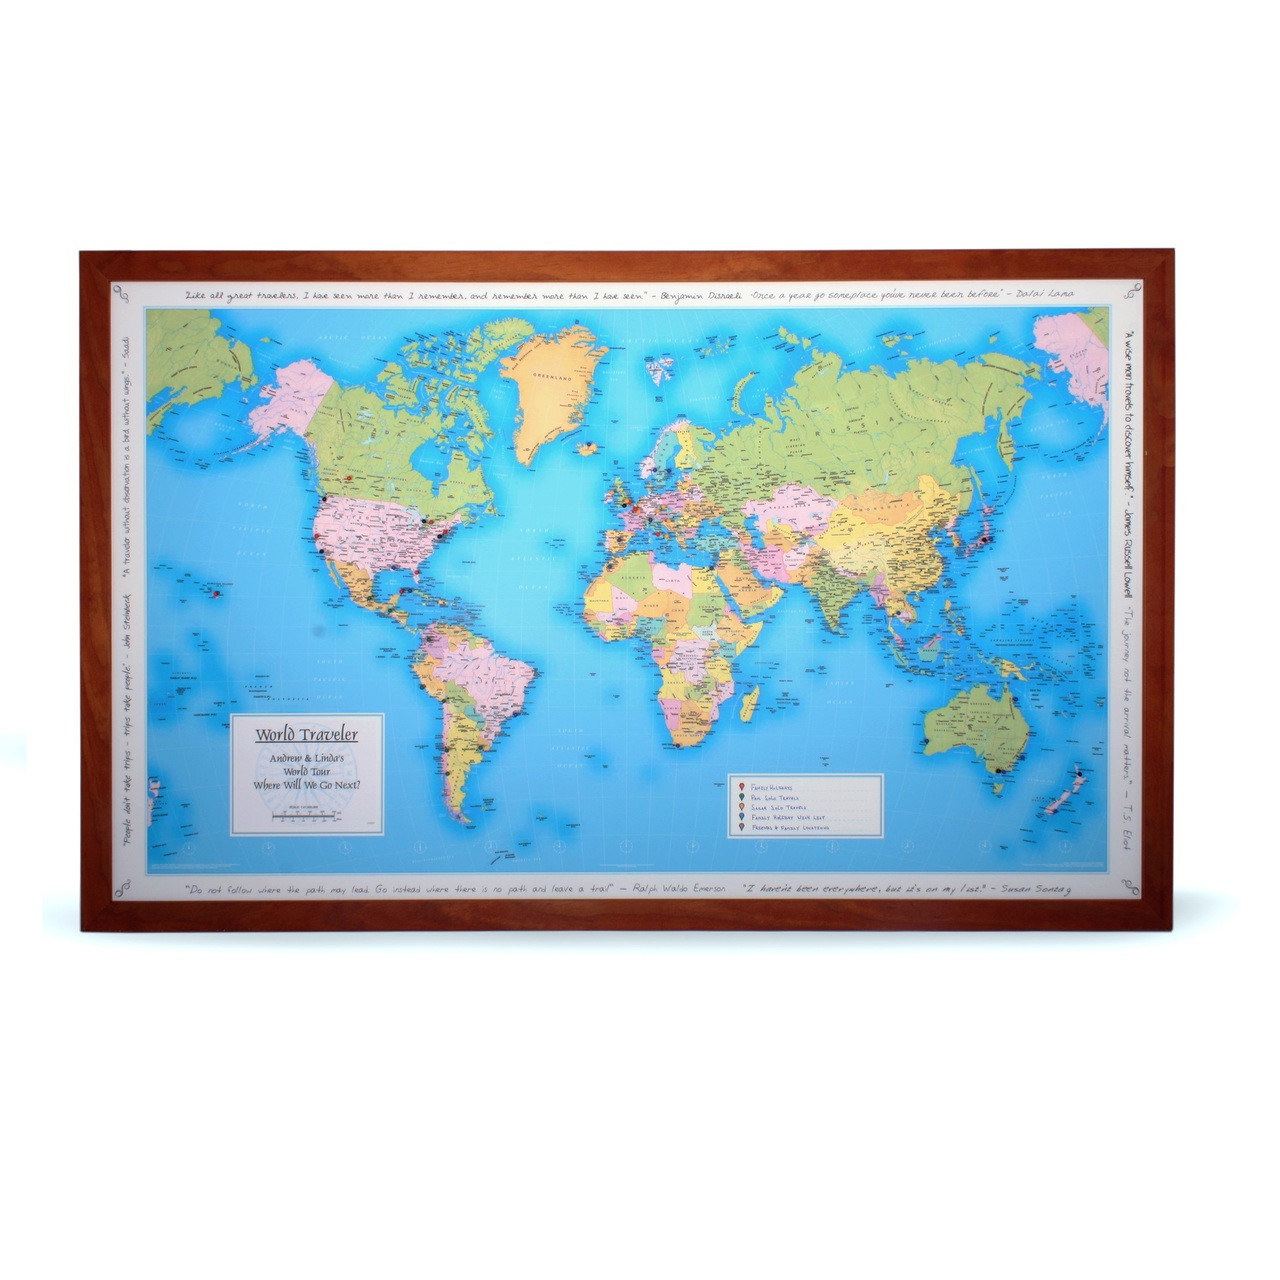 Personalized World Travel Map Framed and Ready to Hang – World Traveler Map